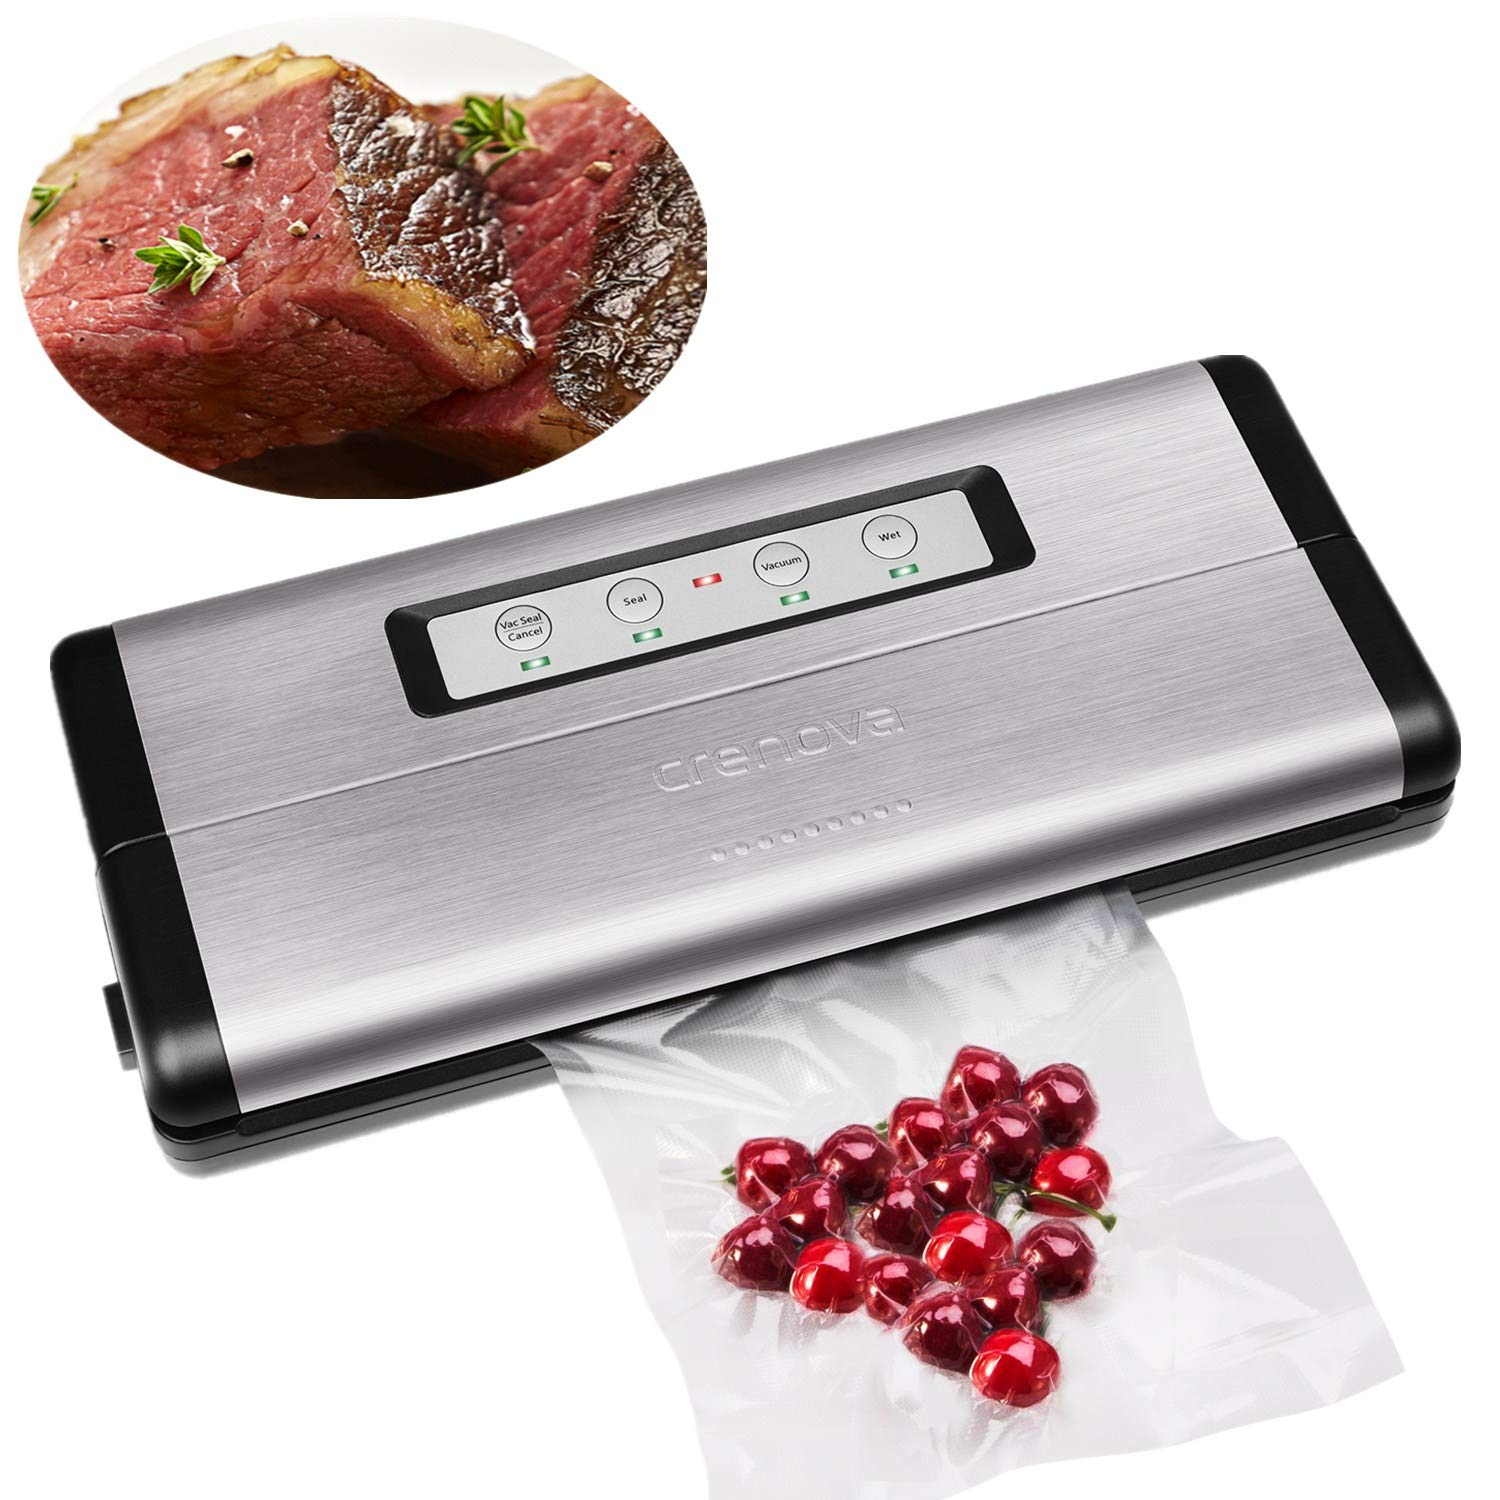 Crenova best vacuum sealer